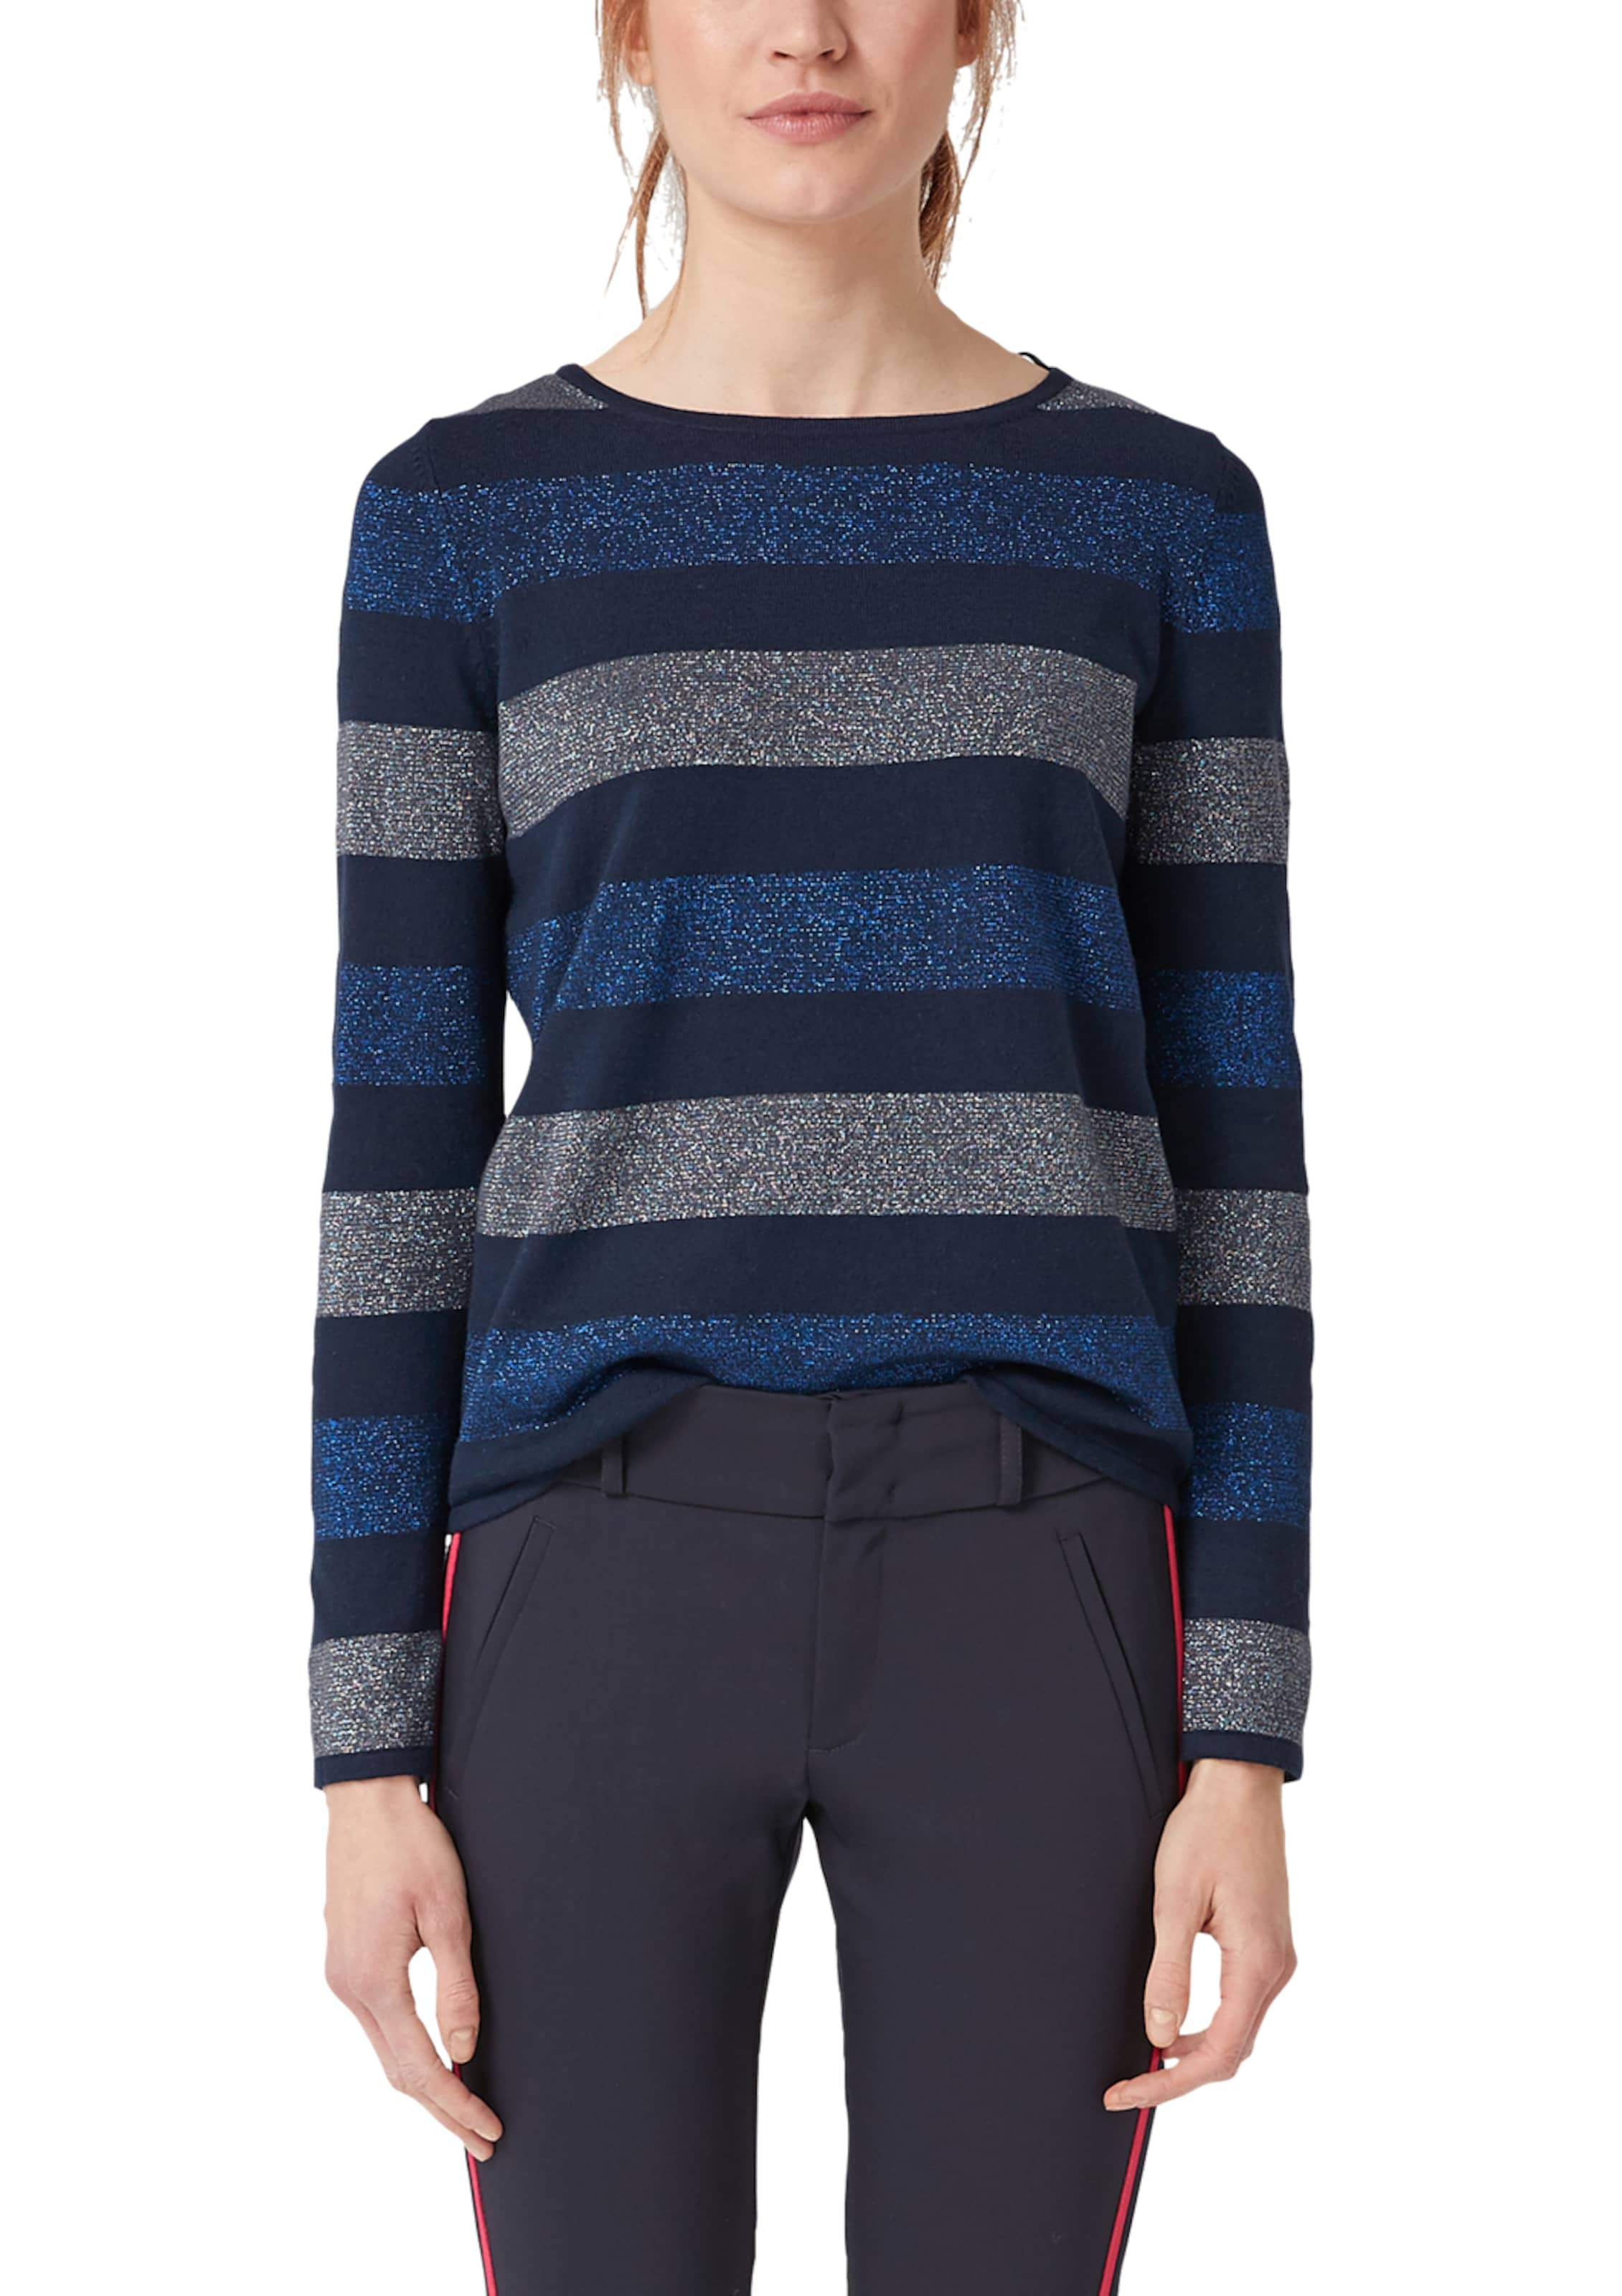 S Rauchgrau EnzianHimmelblau Red Label Pullover In oliver 5c4RjLq3A